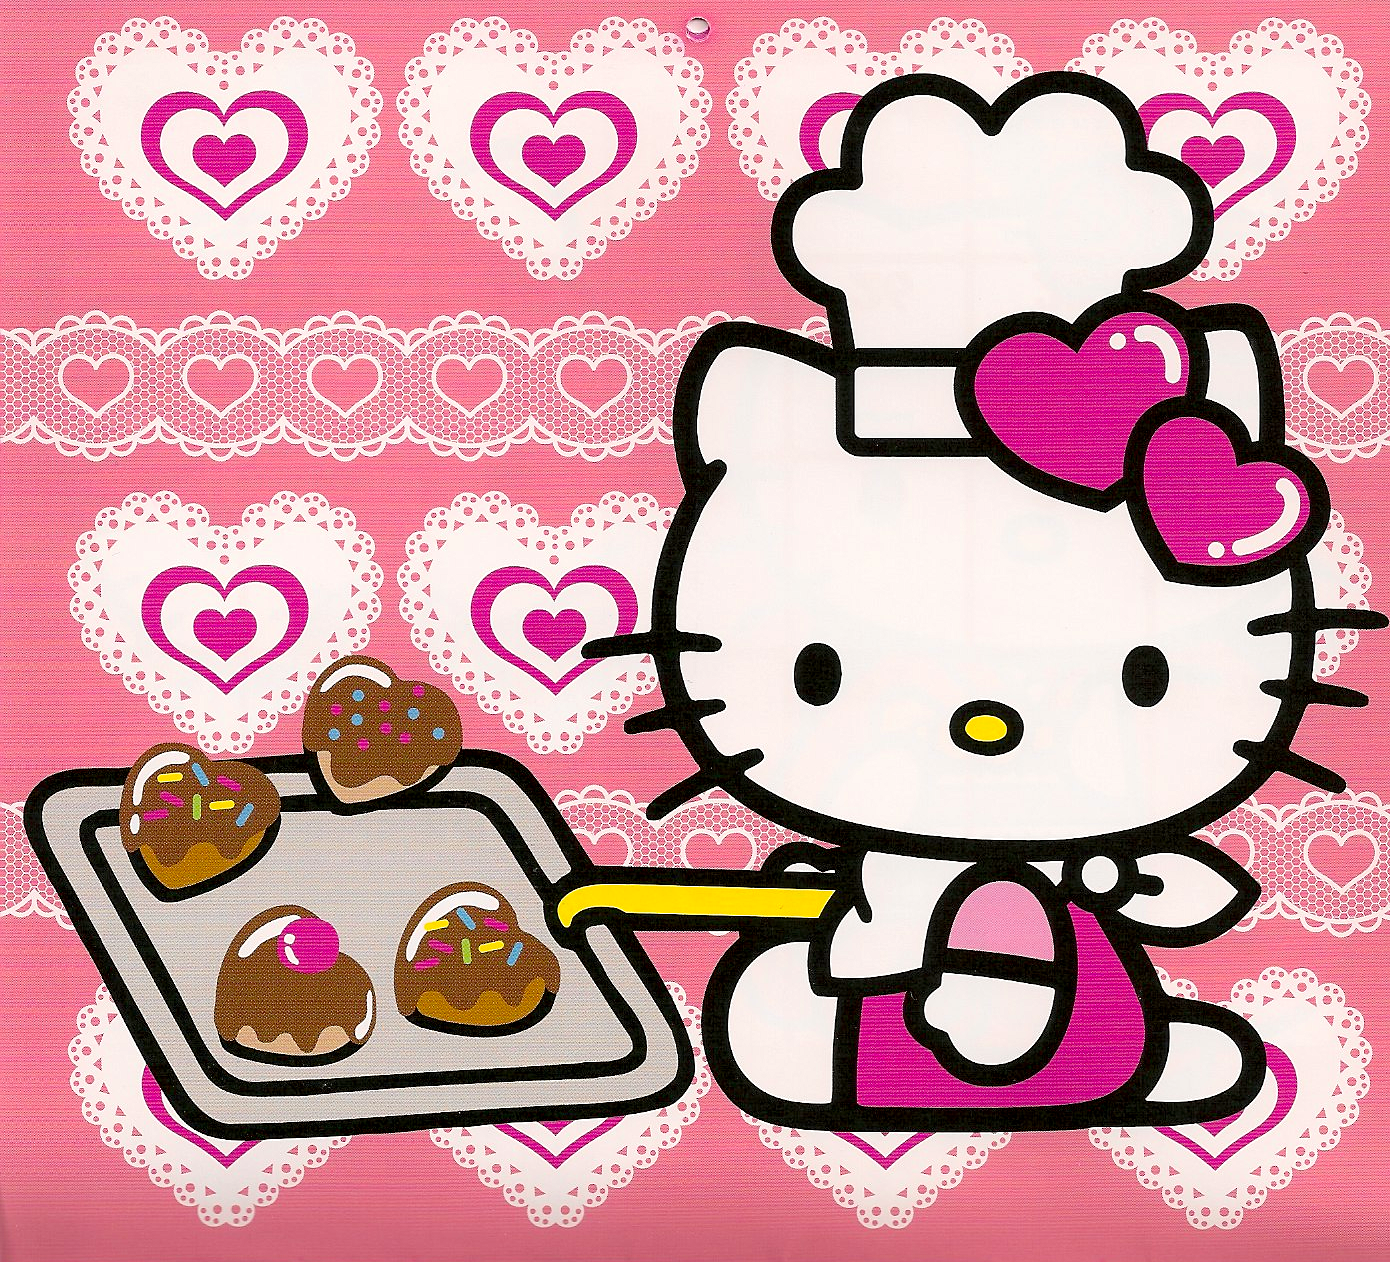 Popular Wallpaper Hello Kitty Cupcake - hkfeb  Perfect Image Reference_9333.png